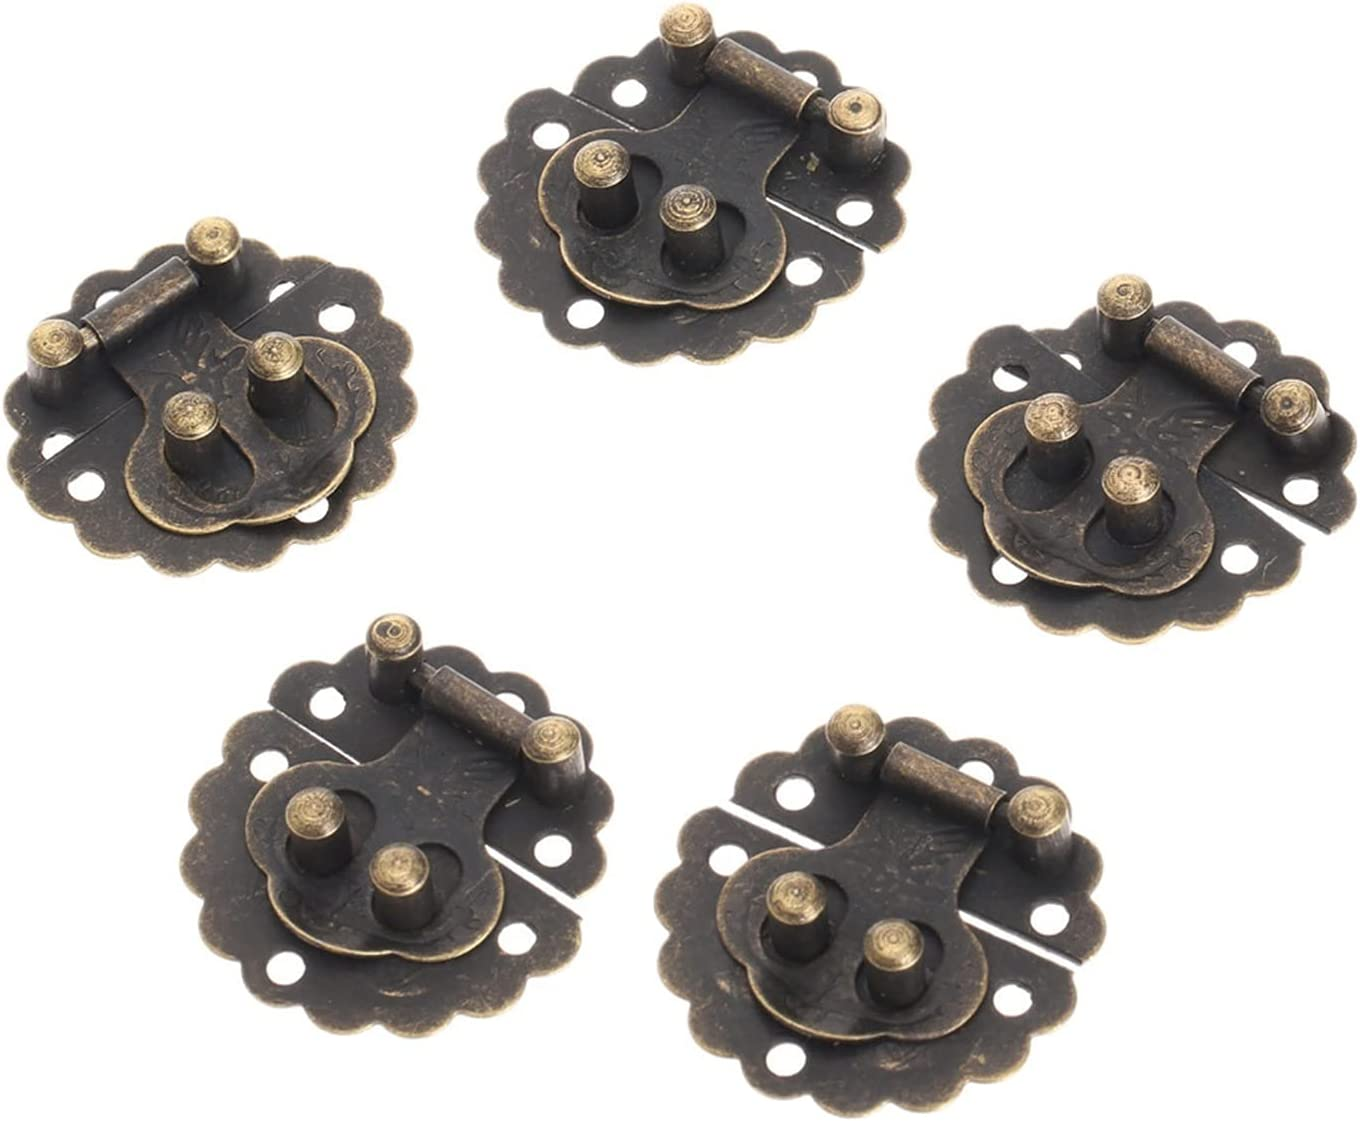 Household Furniture Hardware Limited Special Price Hinges Lat Max 63% OFF 10pcs Vintage Decorative